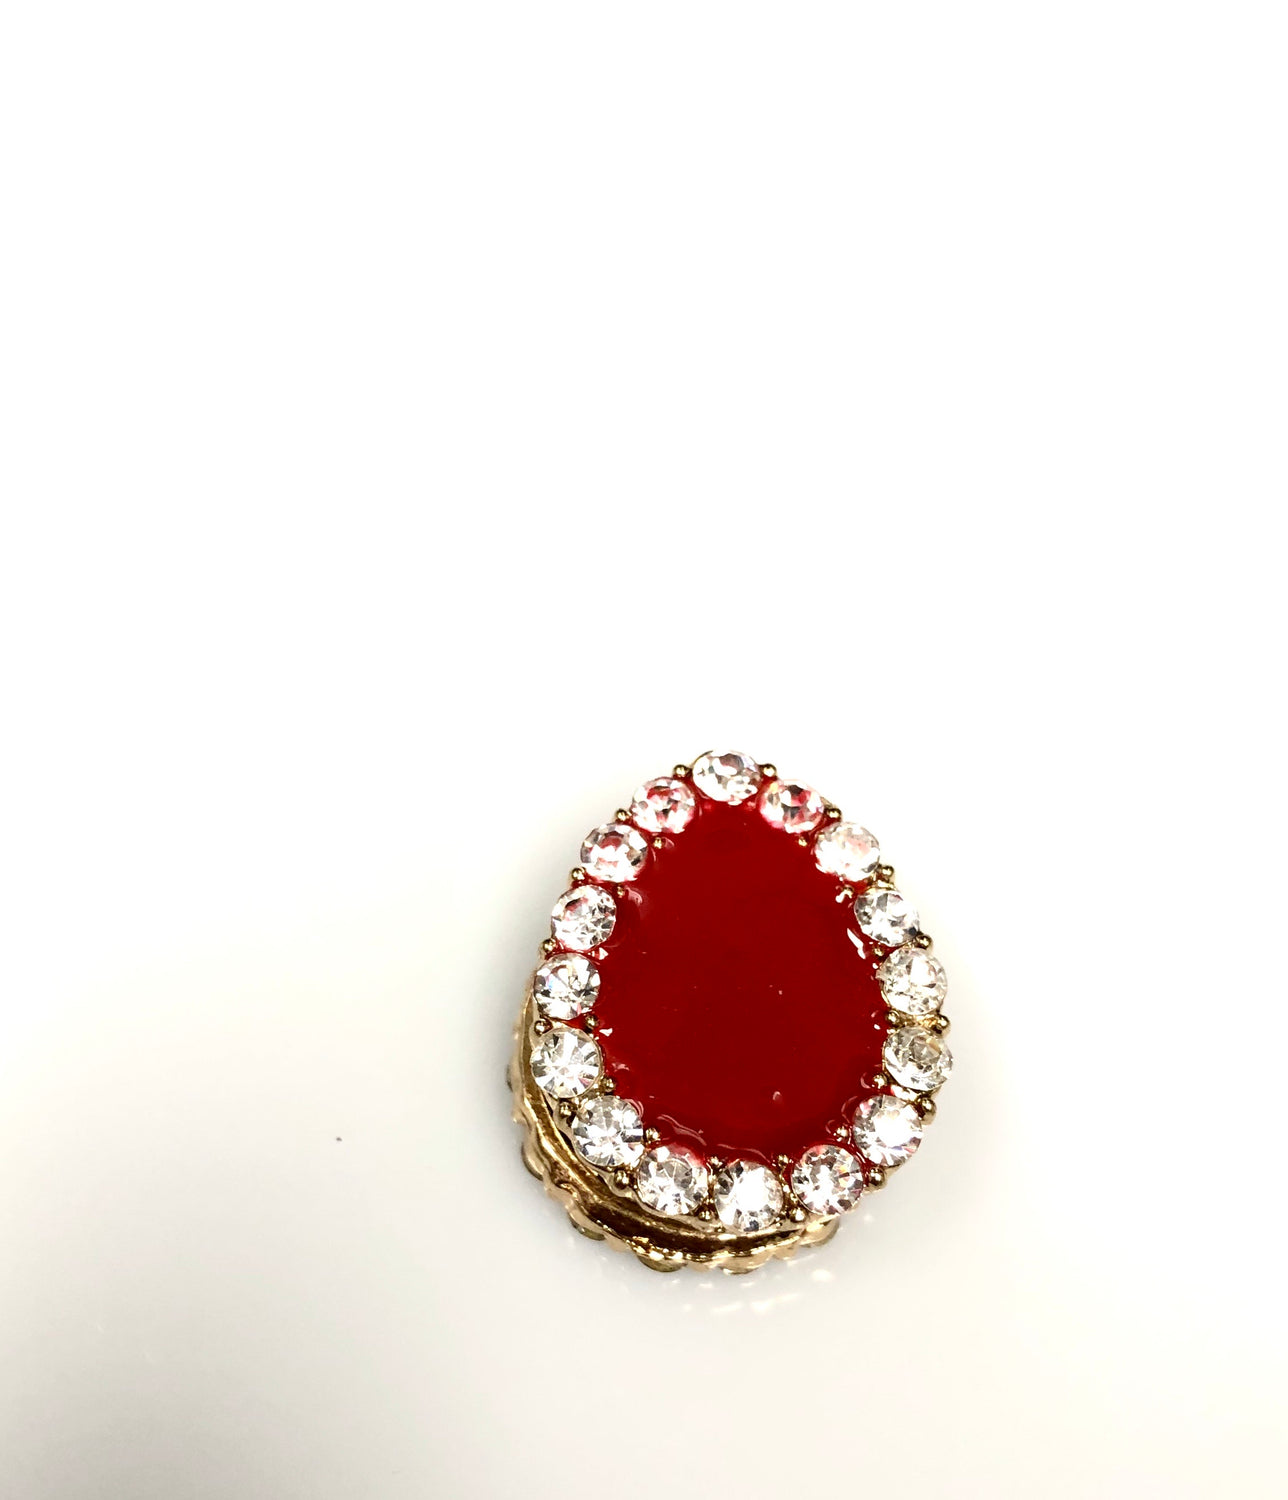 Pear Shaped Magnetic Pin - Maroon